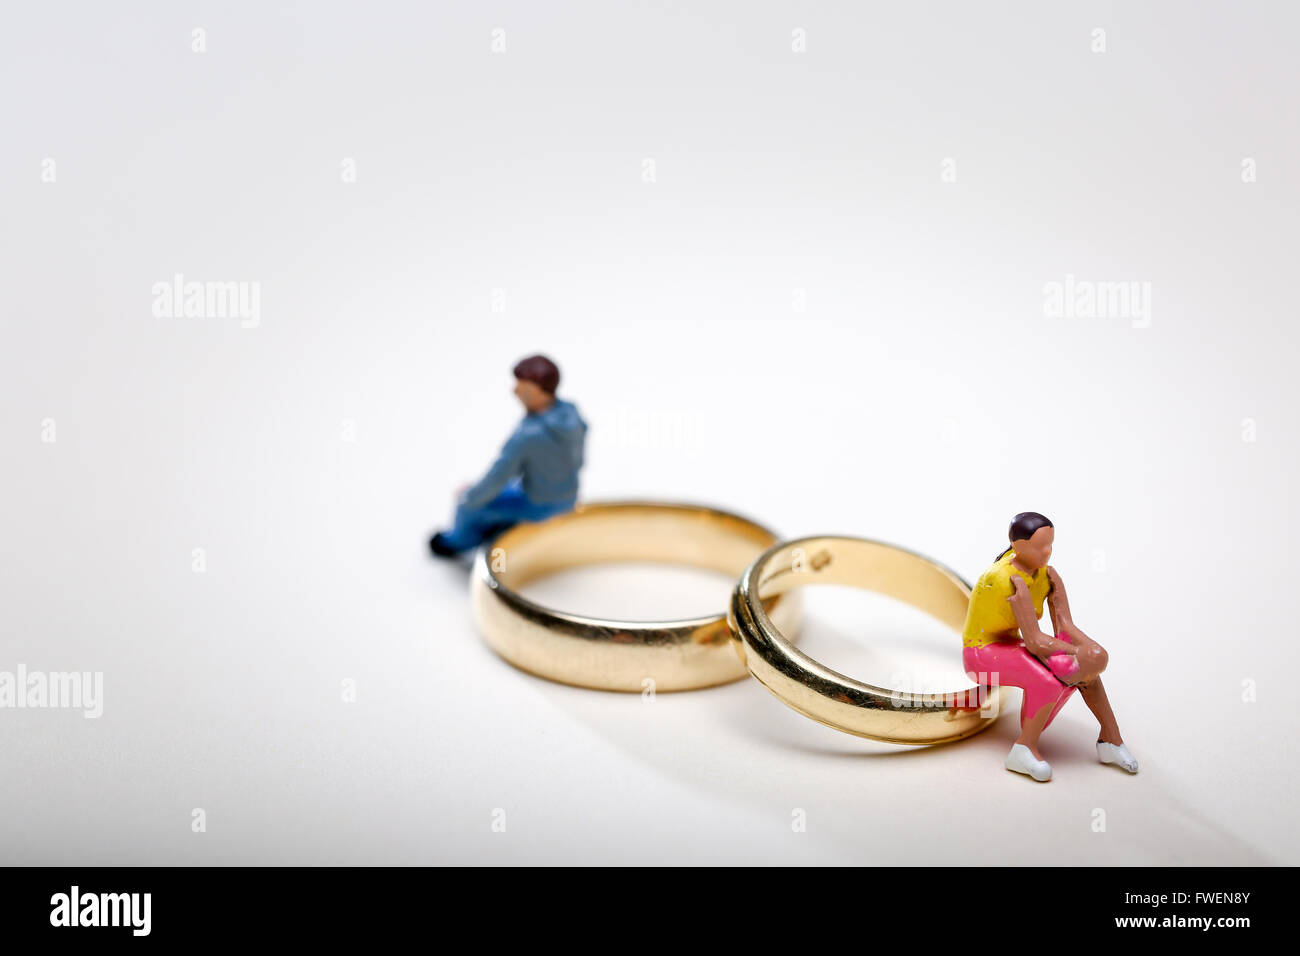 Concept image of a couple sat on wedding rings to illustrate divorce and separation - Stock Image